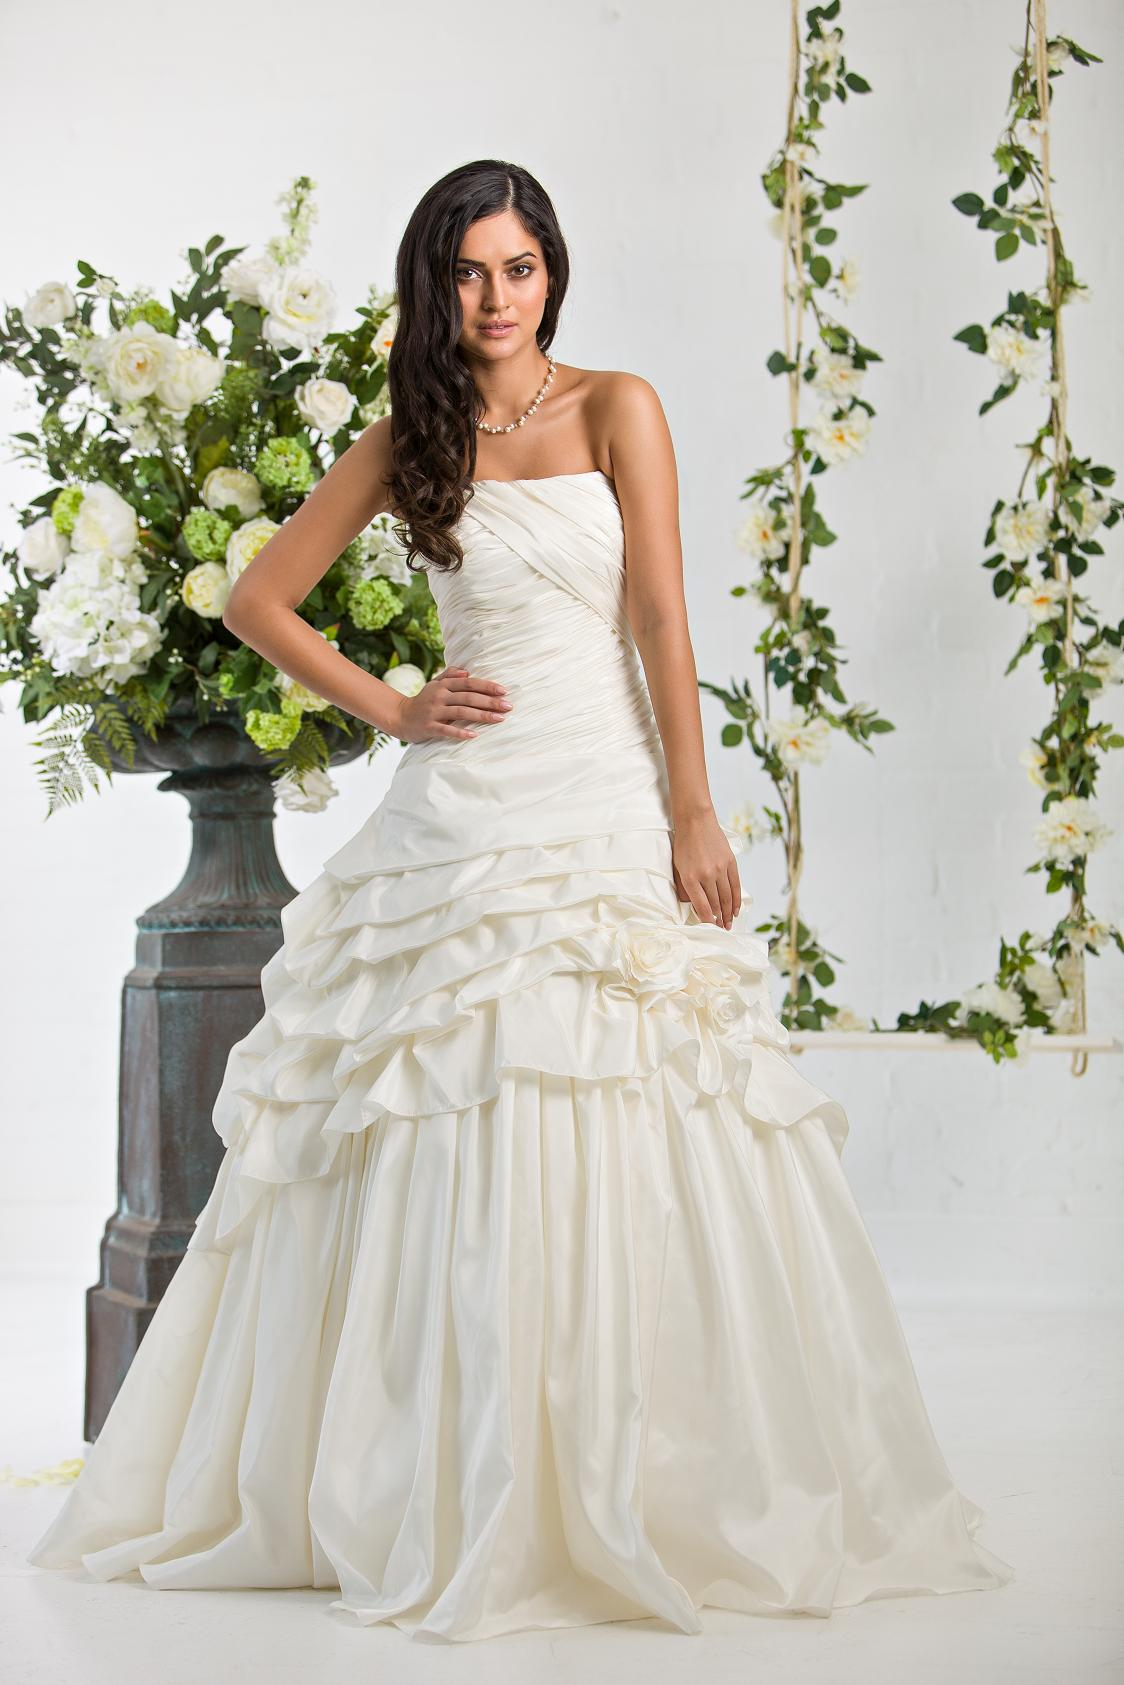 Verise Bridal - Ronea